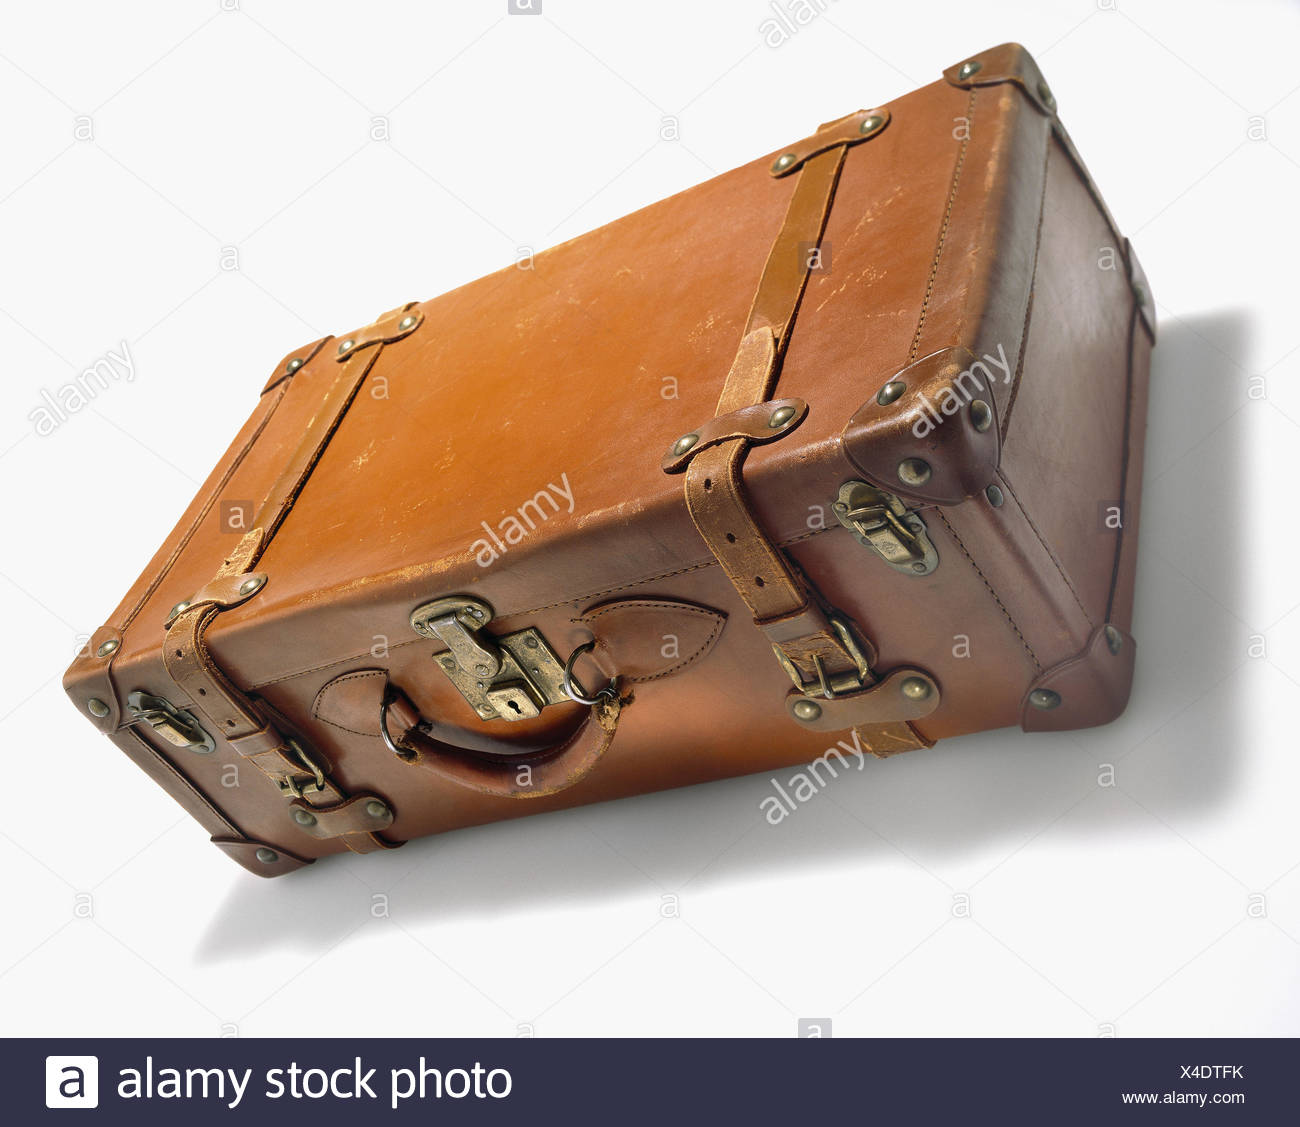 Studio photograph of Old antique leather suite case, on white Stock Photo